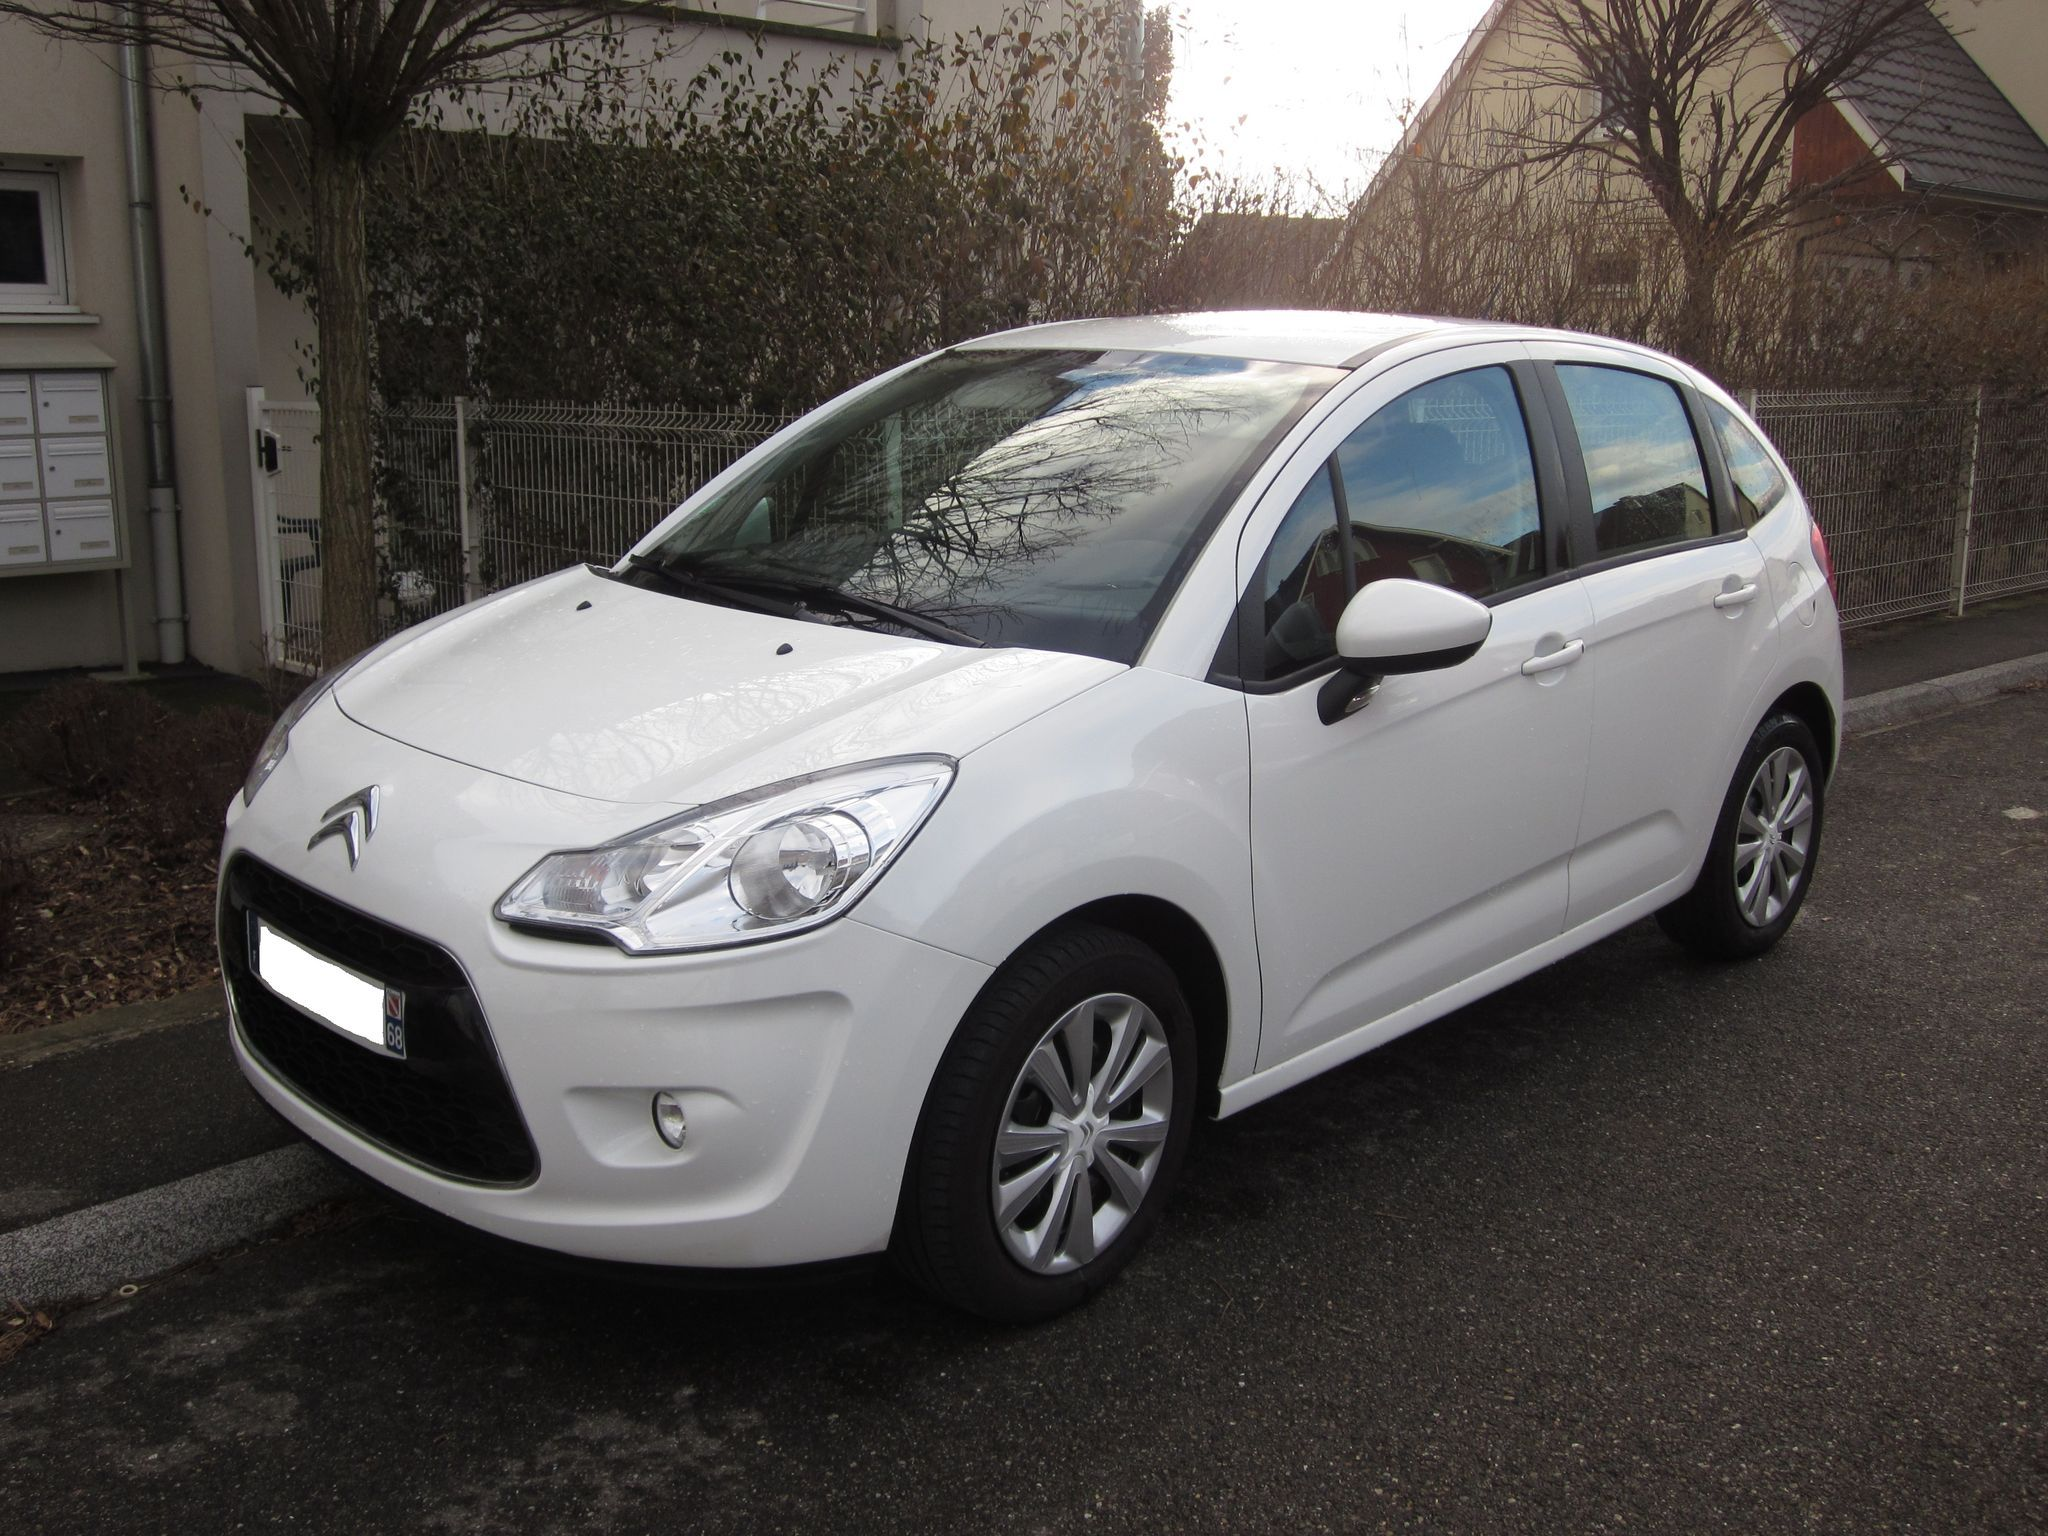 citroen c3 vitamine blanc 1 4 essence vendu 6500kms. Black Bedroom Furniture Sets. Home Design Ideas